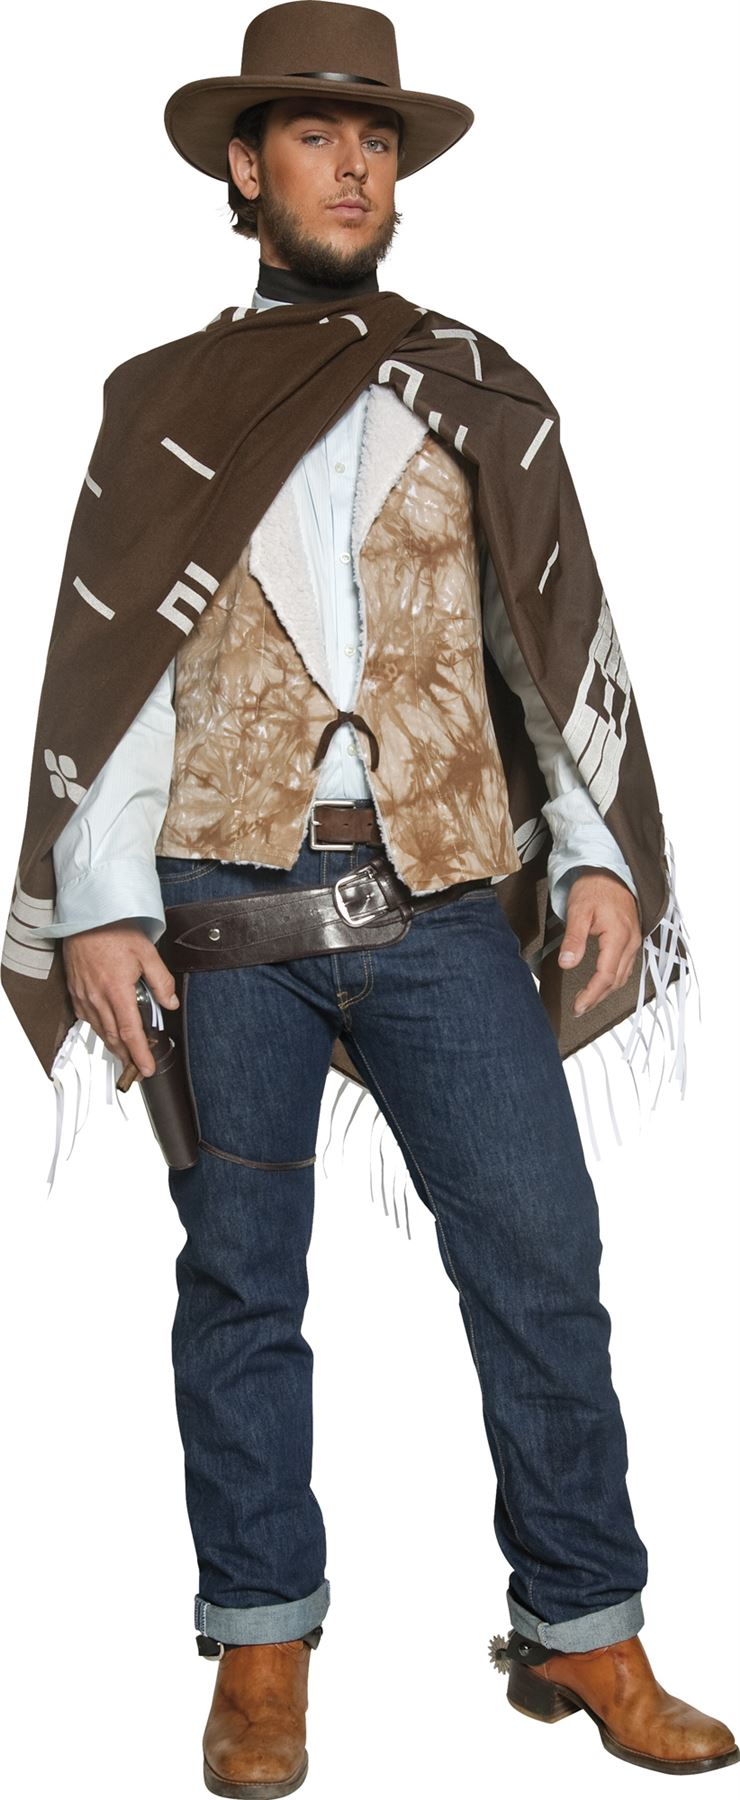 Homme Western Cowboy errant tireur COSTUME ROBE FANTAISIE Clint Eastwood poncho